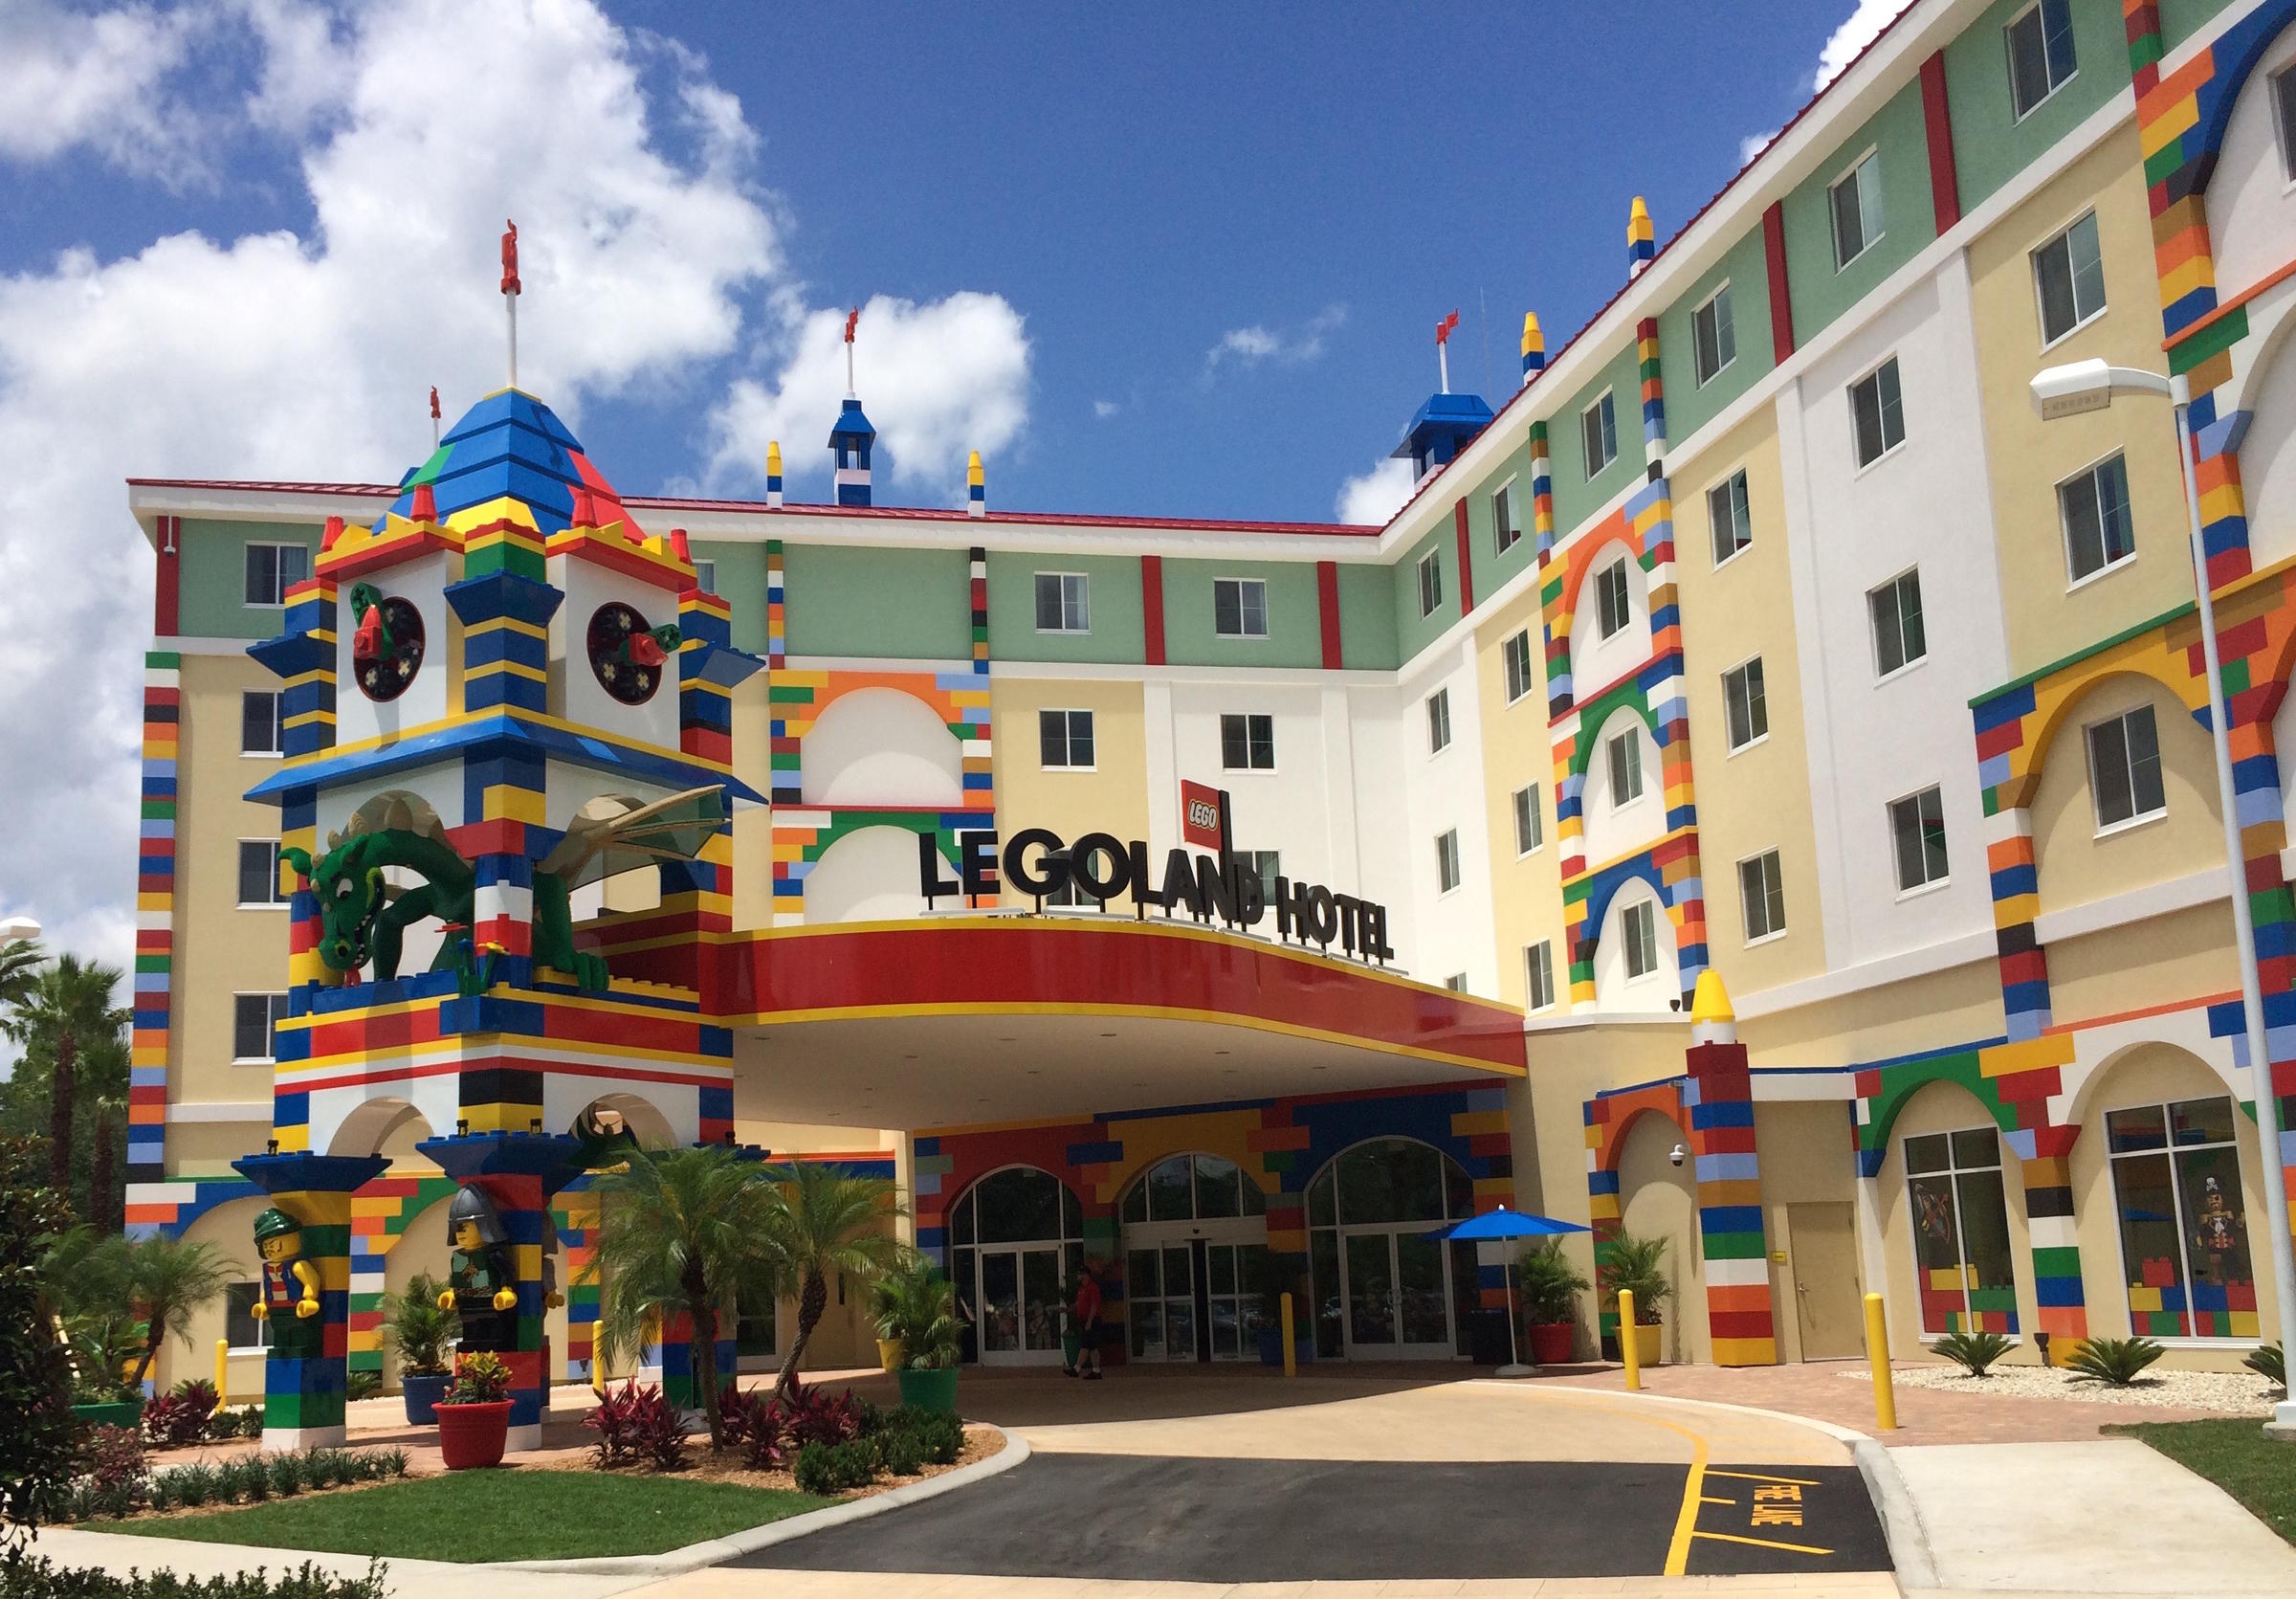 The Legoland Hotel Is Only About 100 Steps Away From Front Entrance To Florida Theme Park